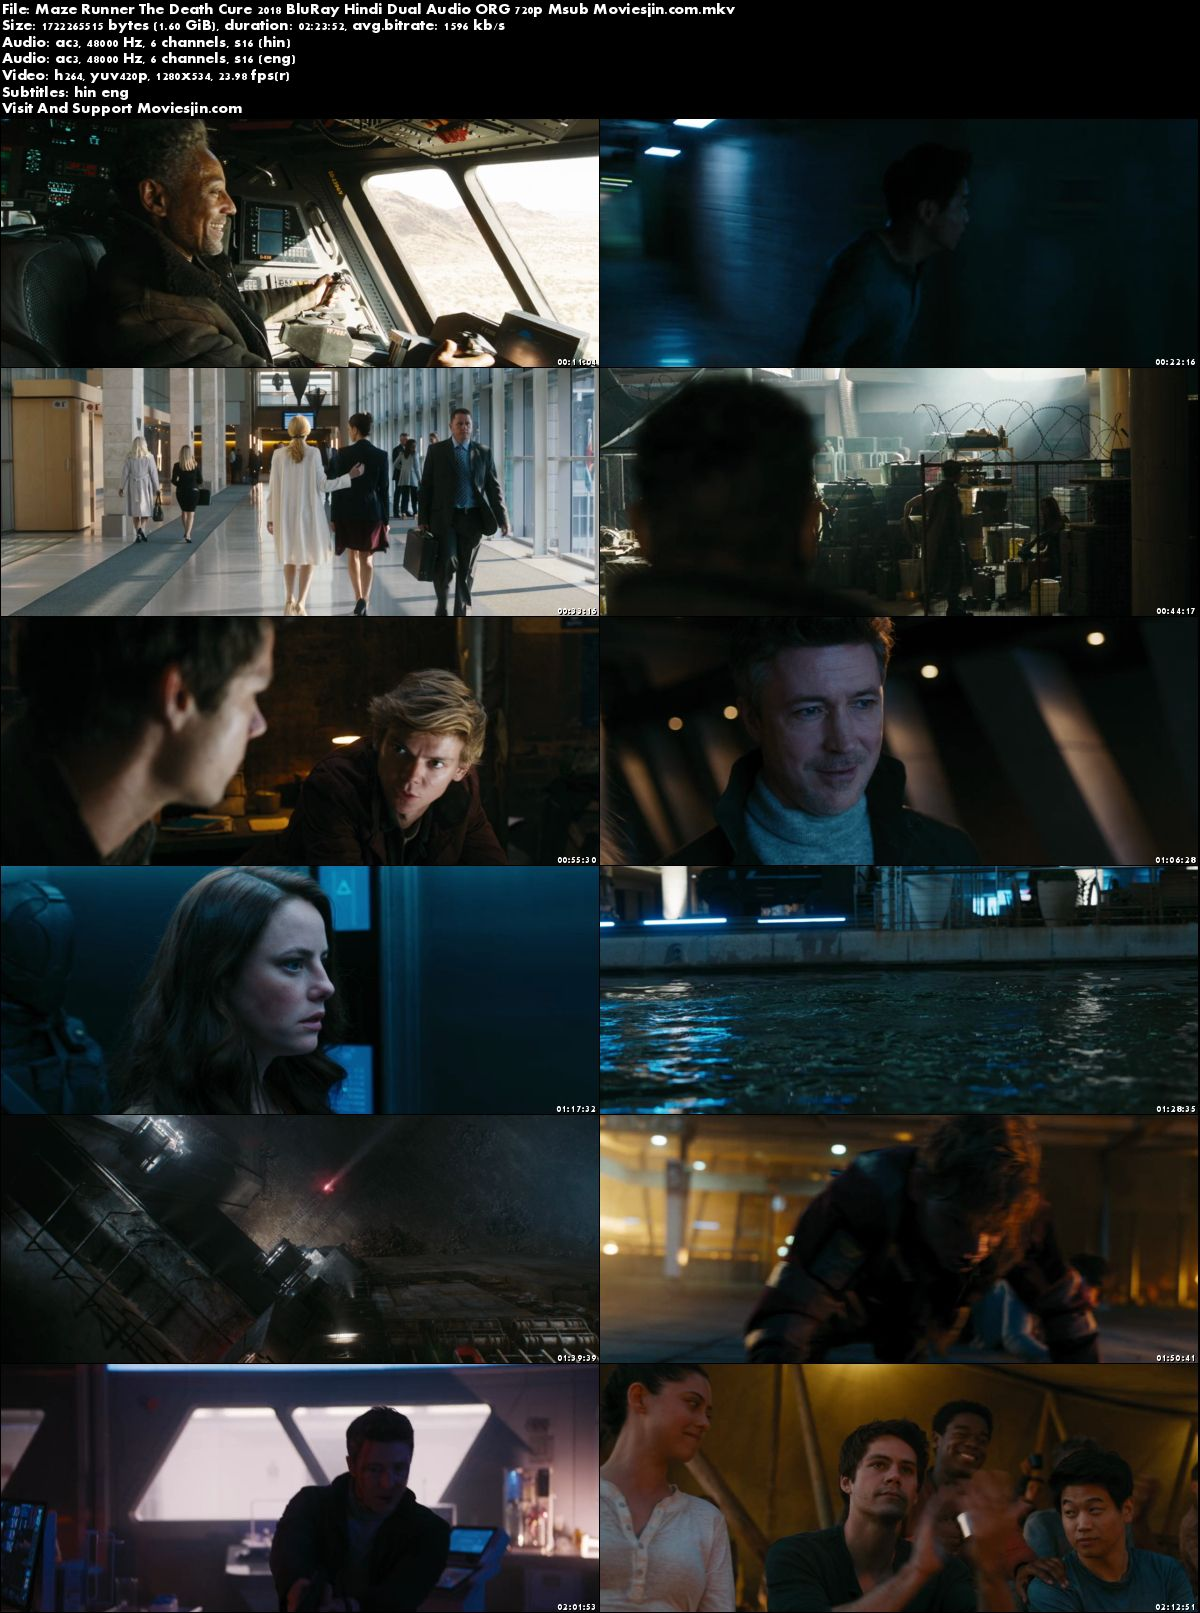 Watch Online Maze Runner The Death Cure 2018 BluRay Hindi 450MB Dual Audio 480p Msub Full Movie Download mkvcage